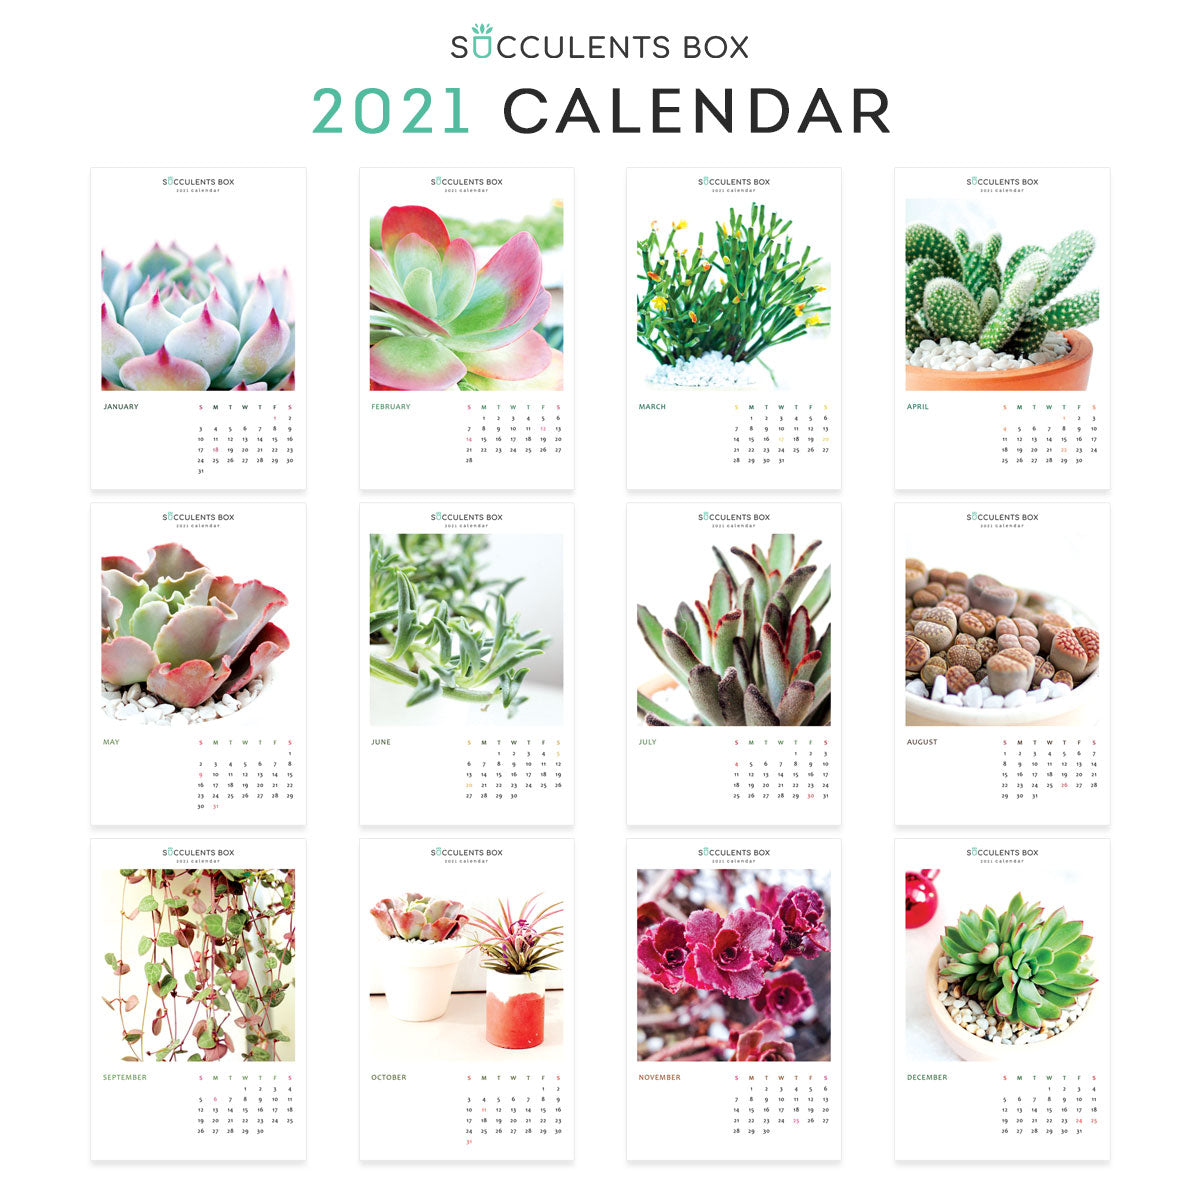 Succulent Calendar 2021, Printable Monthly Cactus and Succulents Calendar, Cute office calendar, Modern office calendar decor, 2021 Succulents Wall Calendar, Nature Themed Home, Office -Housewarming Gift